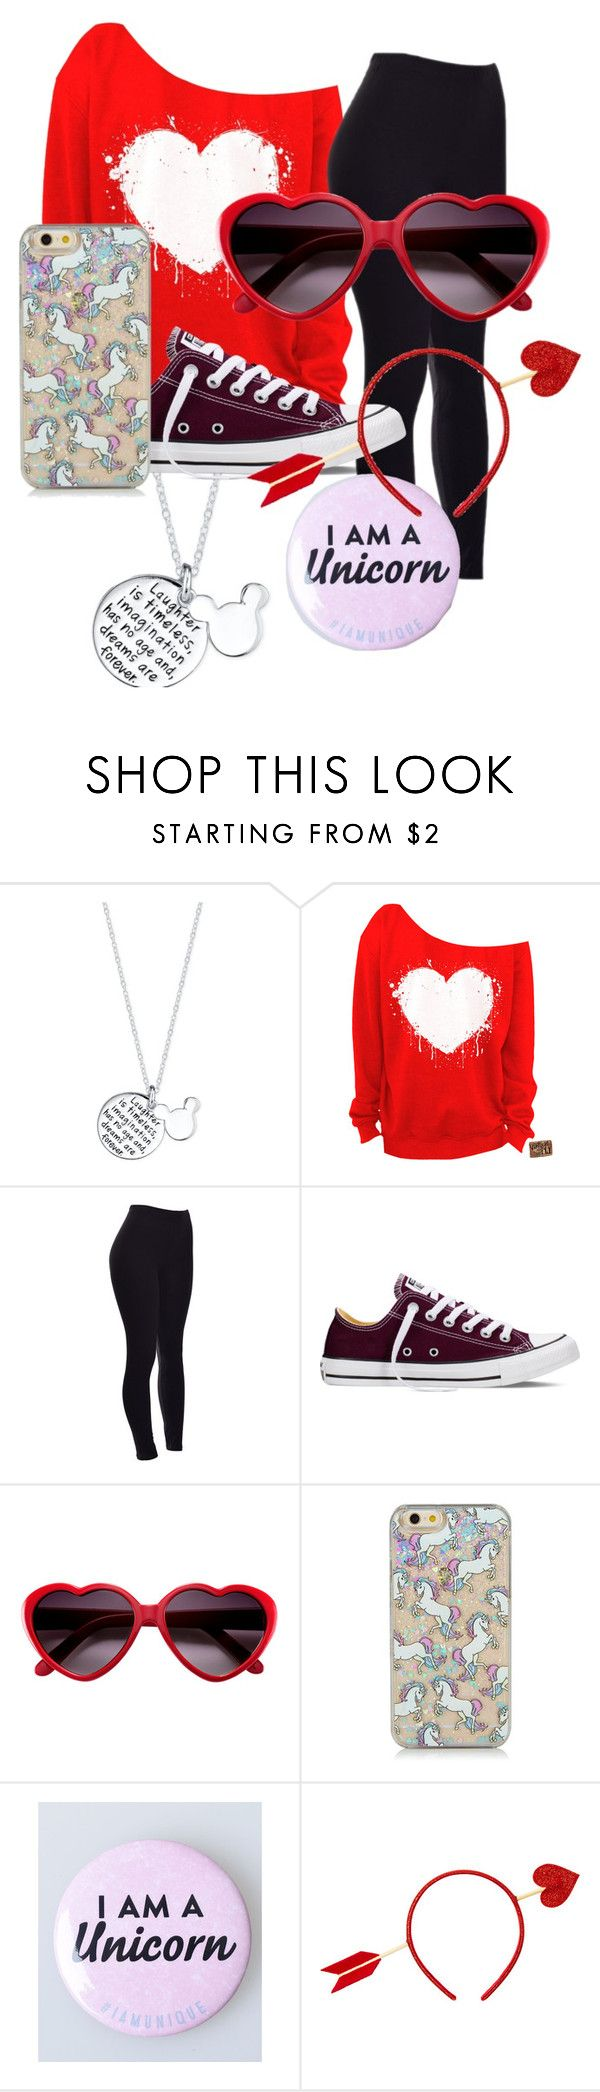 """Alexis Casual V-day Date Outfit"" by lexi-the-fashion-queen ❤ liked on Polyvore featuring Disney, Converse, women's clothing, women, female, woman, misses and juniors"